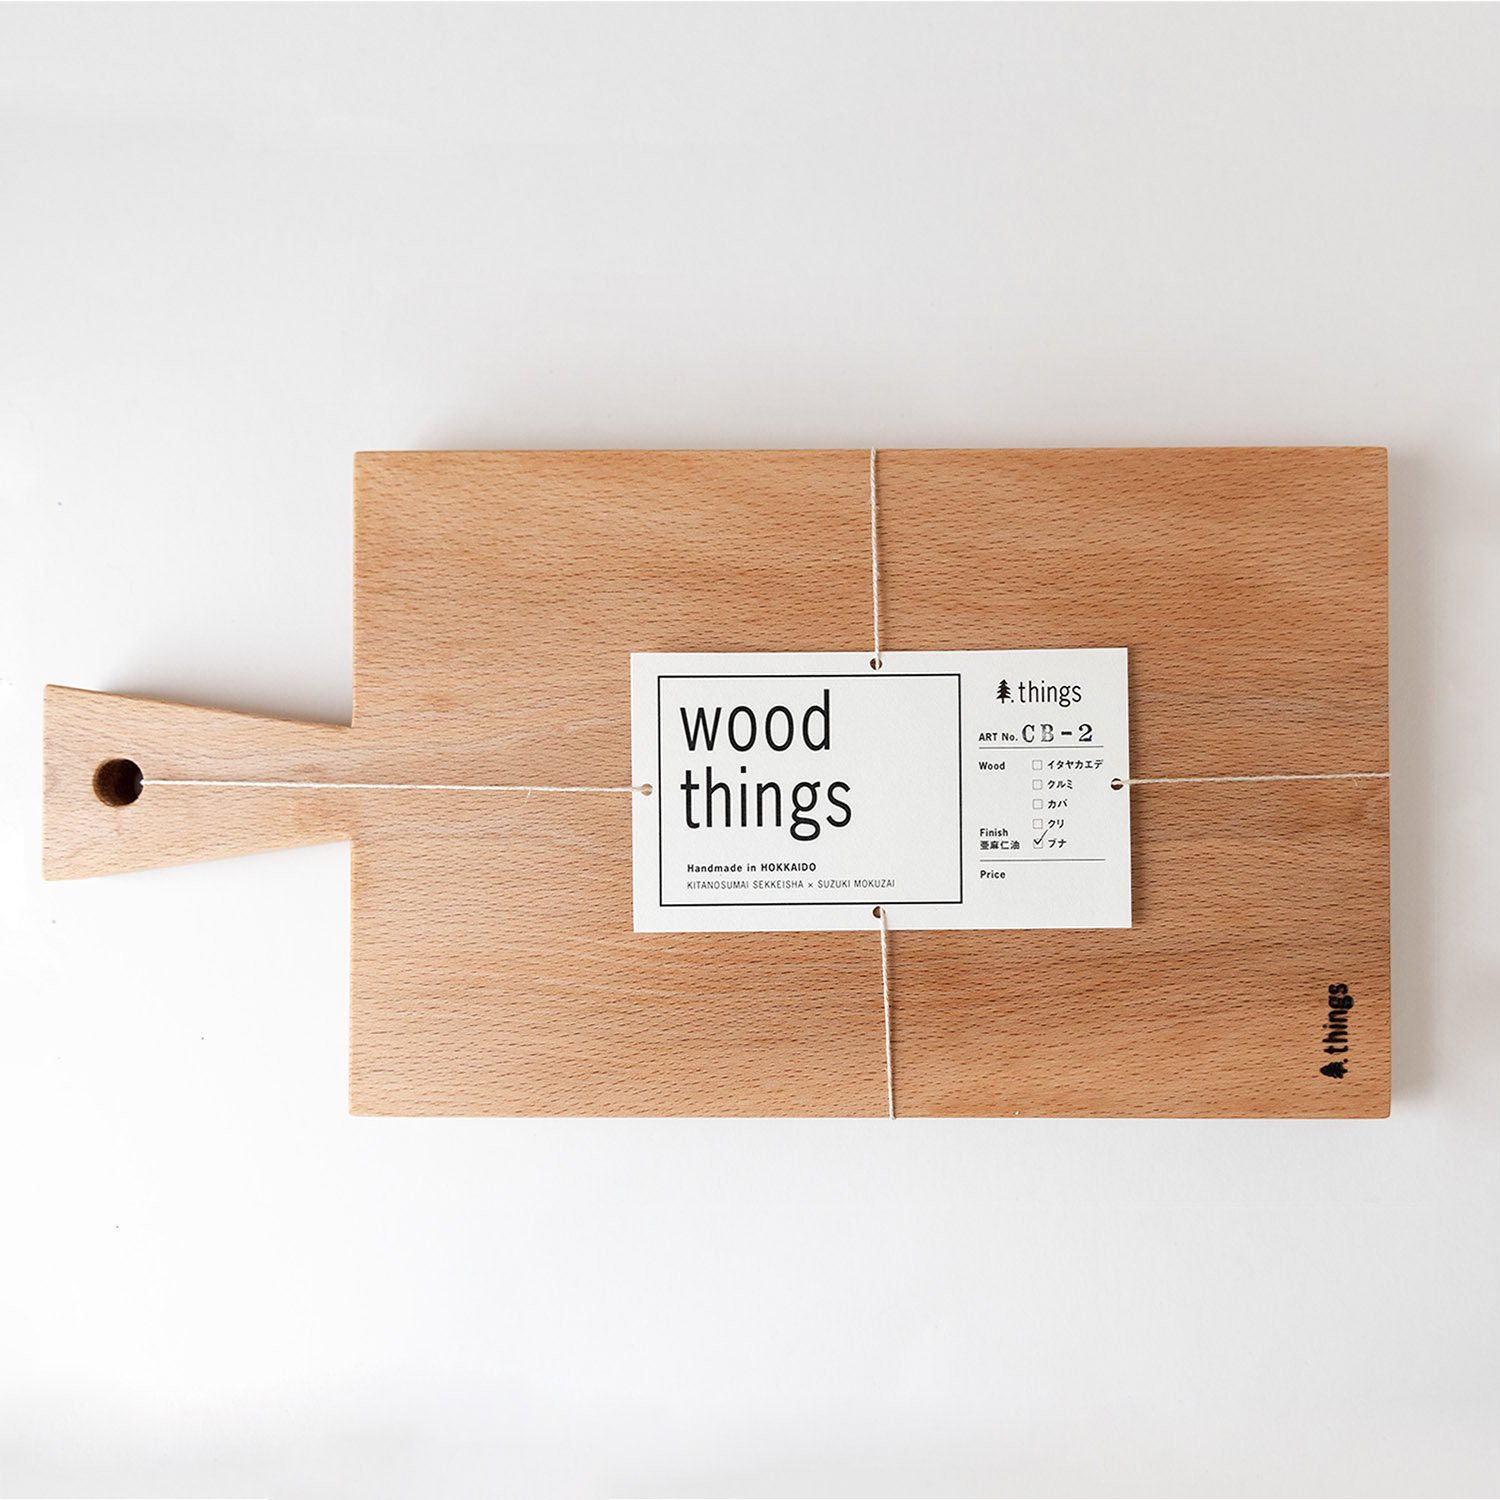 CB-2 cutting board ブナ<img class='new_mark_img2' src='https://img.shop-pro.jp/img/new/icons14.gif' style='border:none;display:inline;margin:0px;padding:0px;width:auto;' />